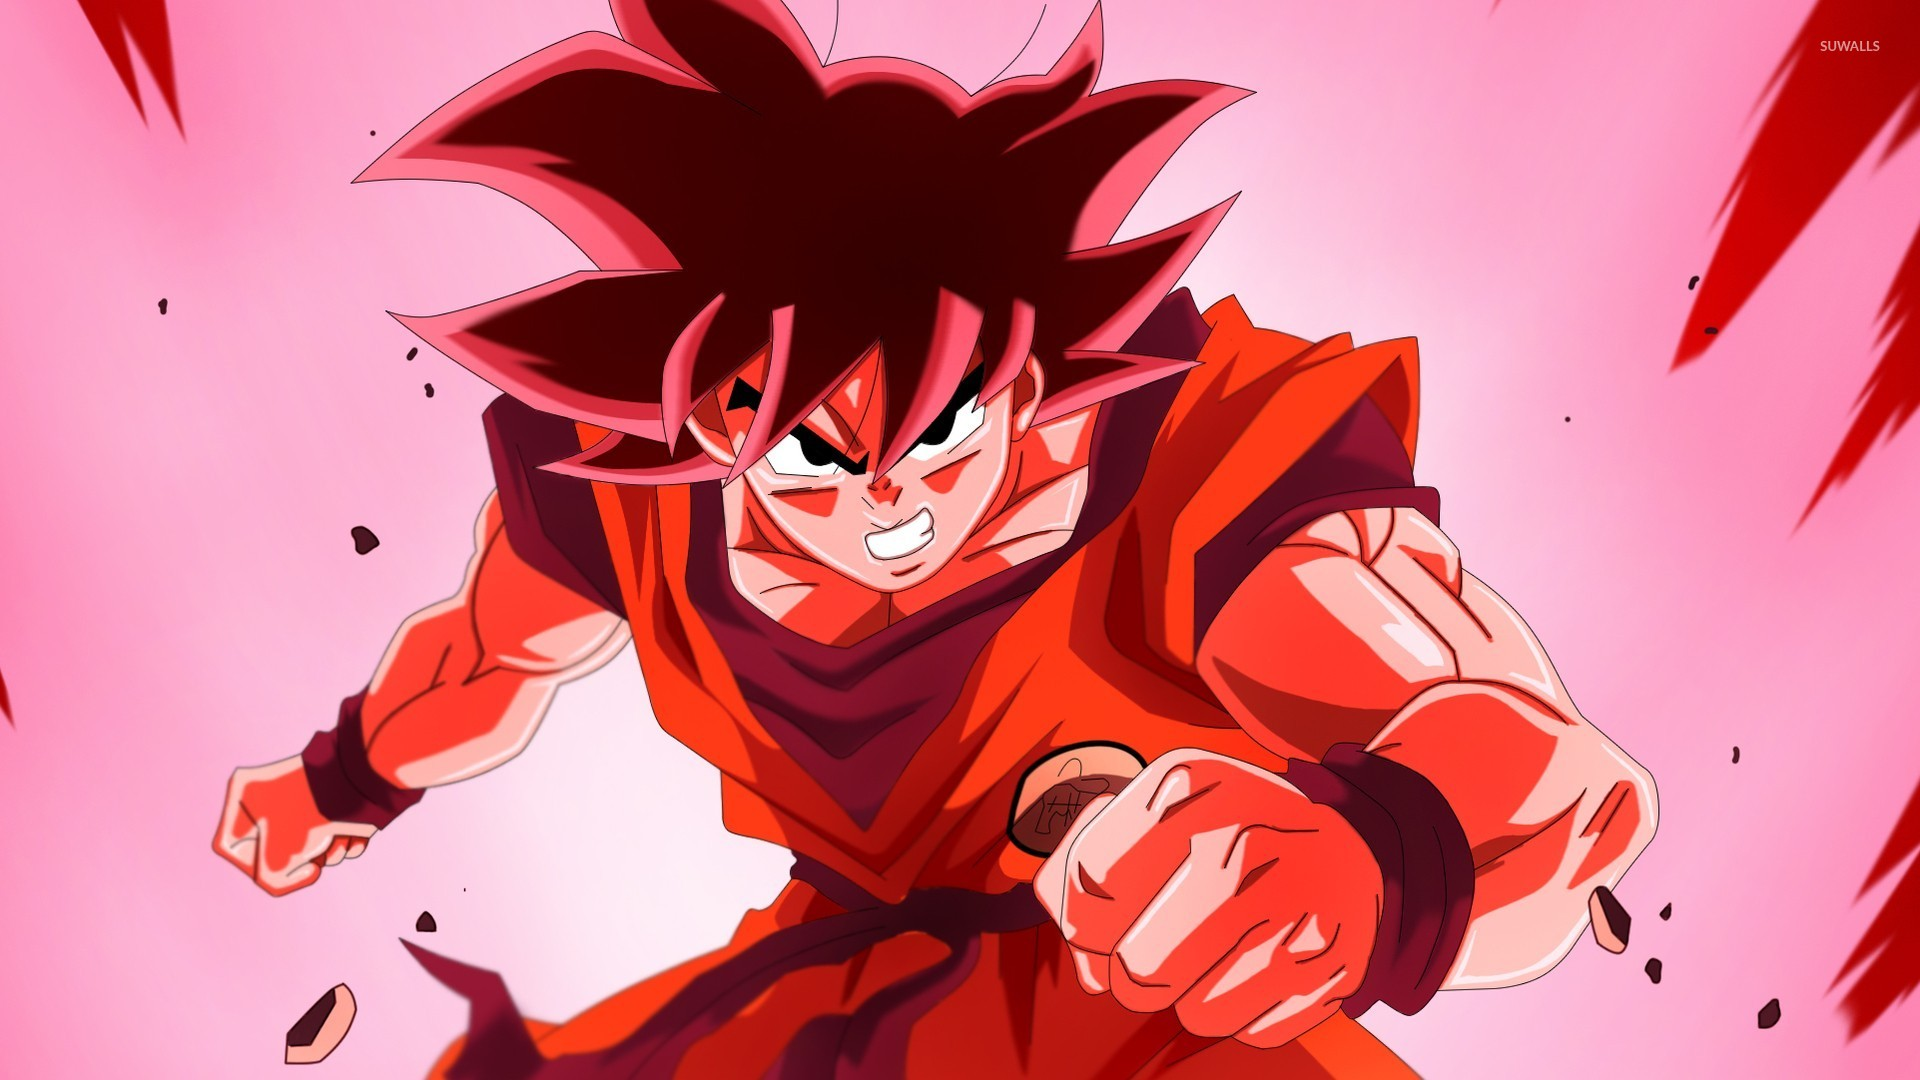 Goku - Dragon Ball Z wallpaper - Anime wallpapers - #8769